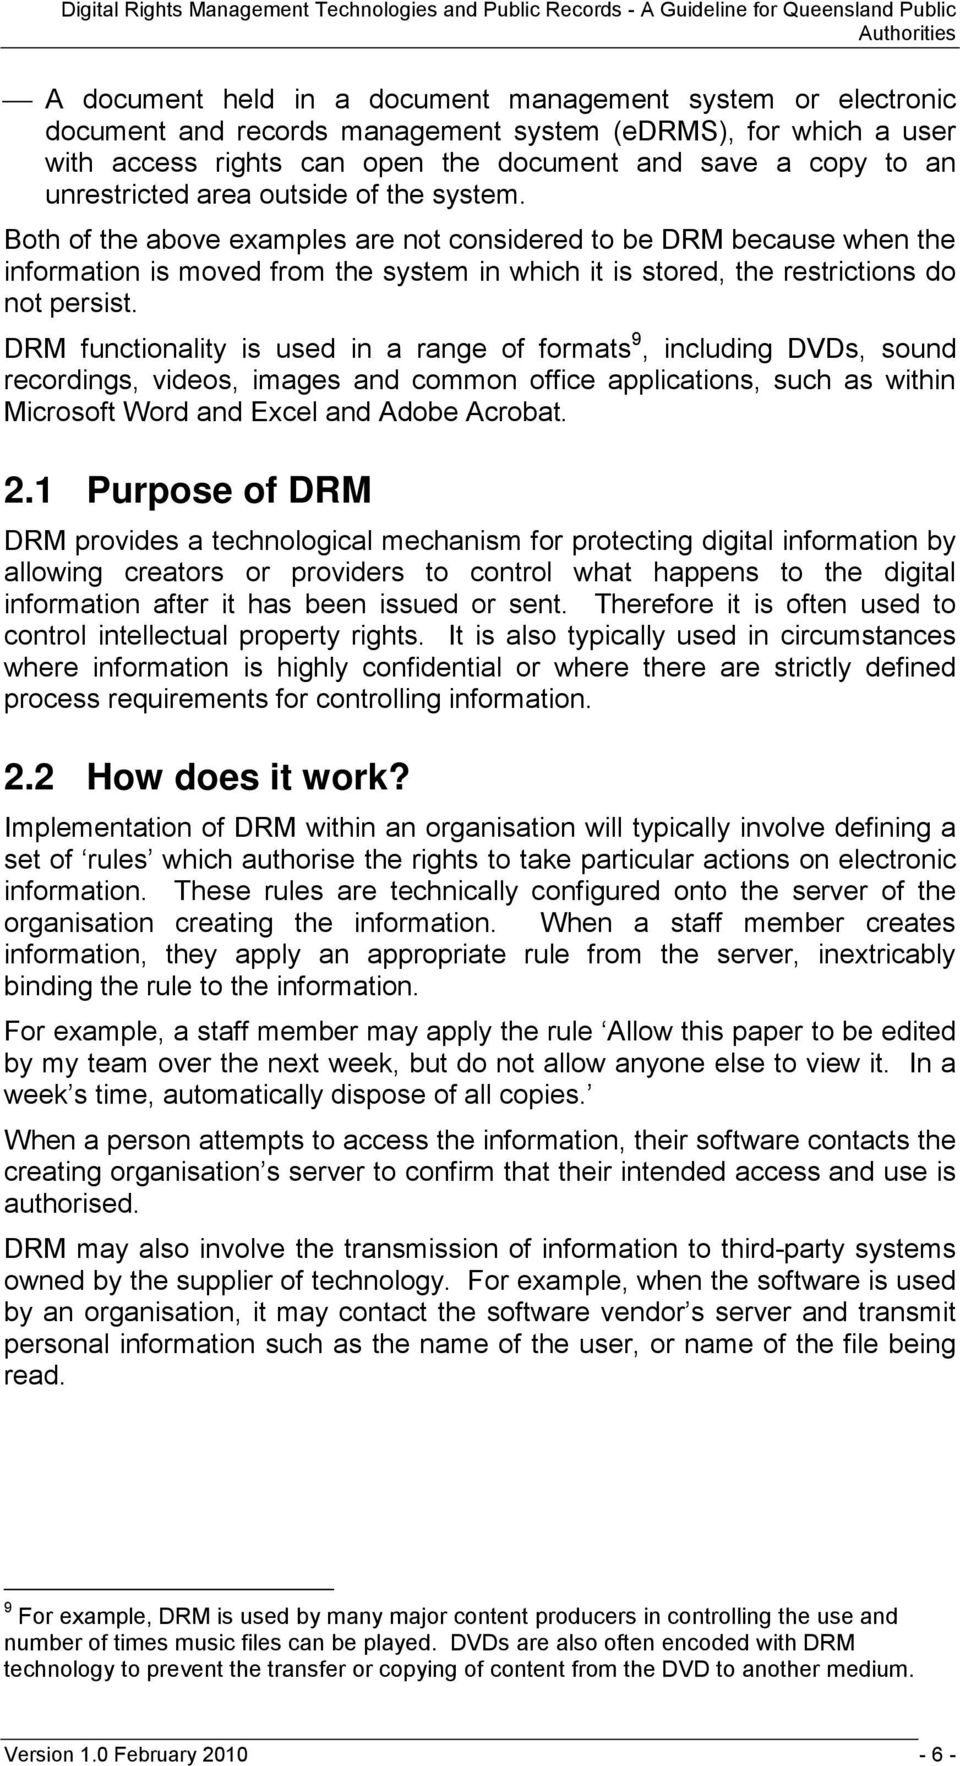 Both of the above examples are not considered to be DRM because when the information is moved from the system in which it is stored, the restrictions do not persist.